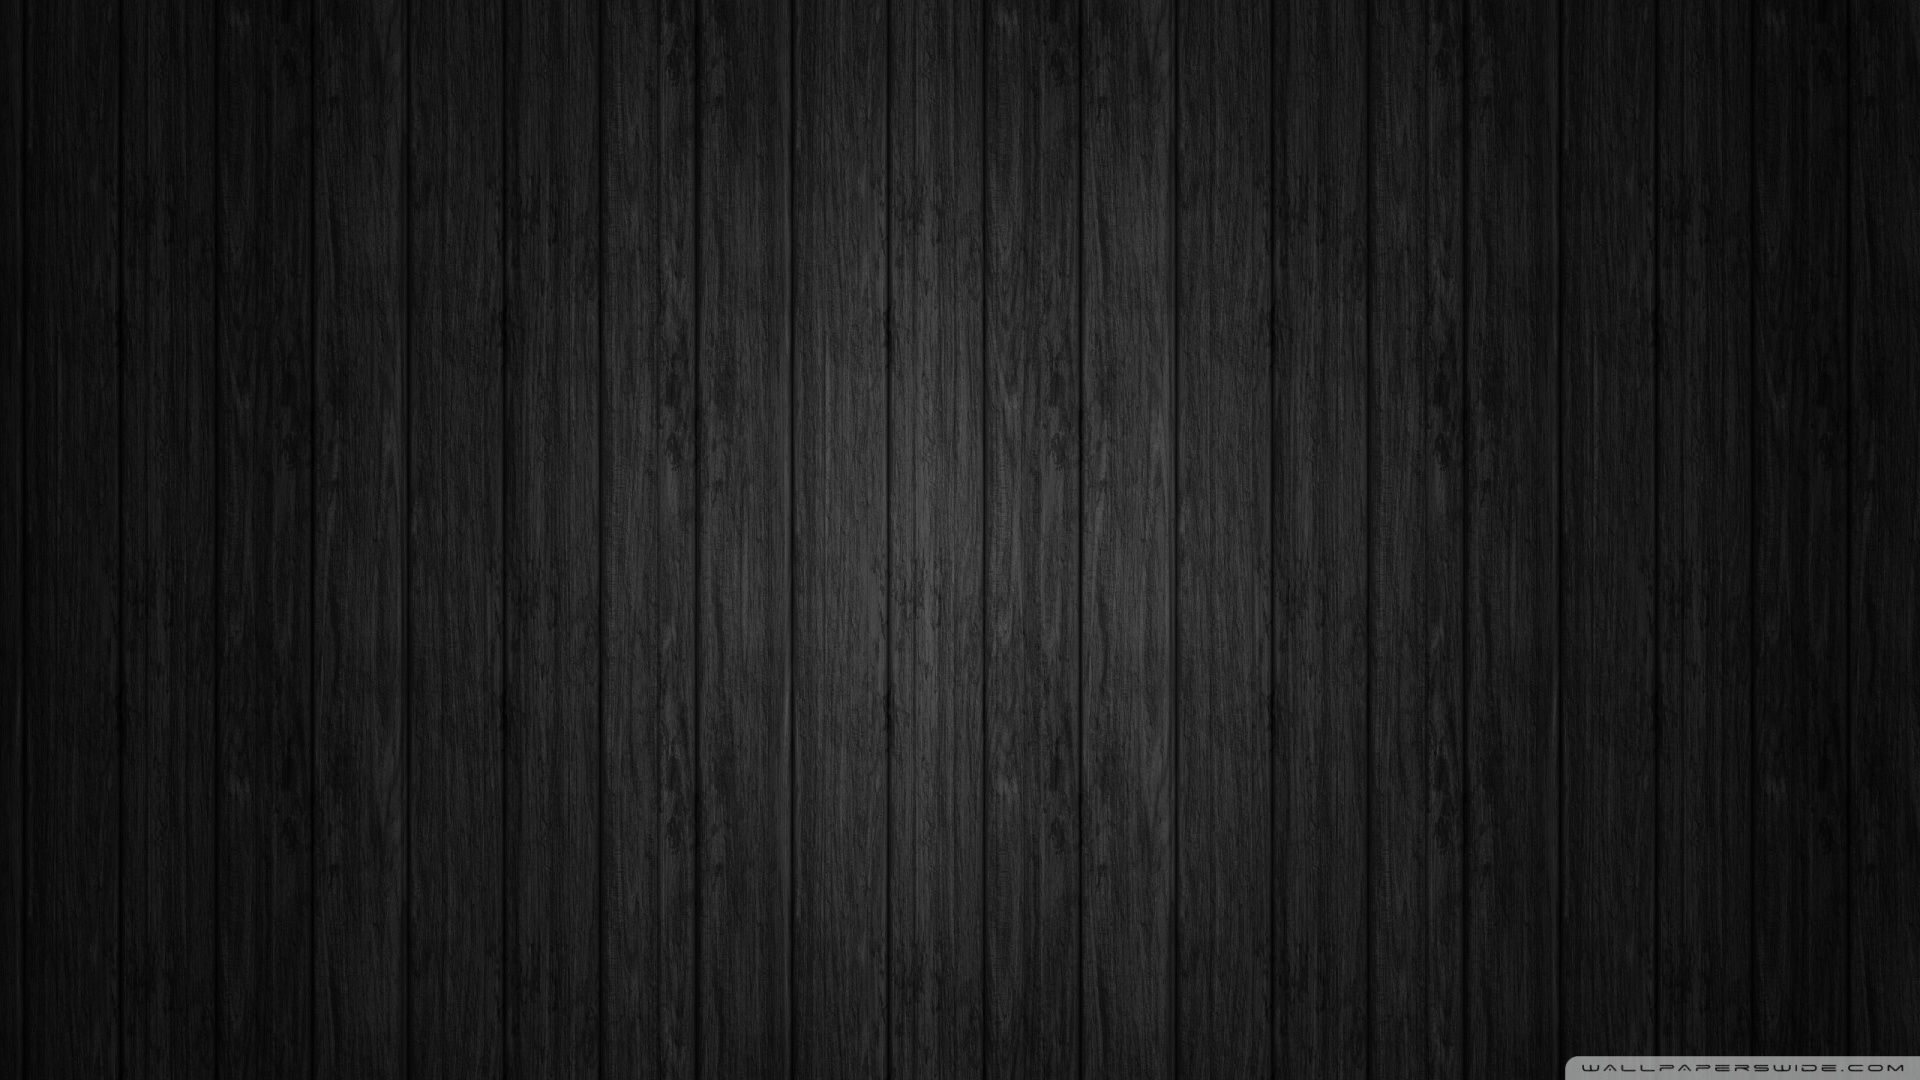 Download 770 Background Hitam Bulu Gratis Terbaru